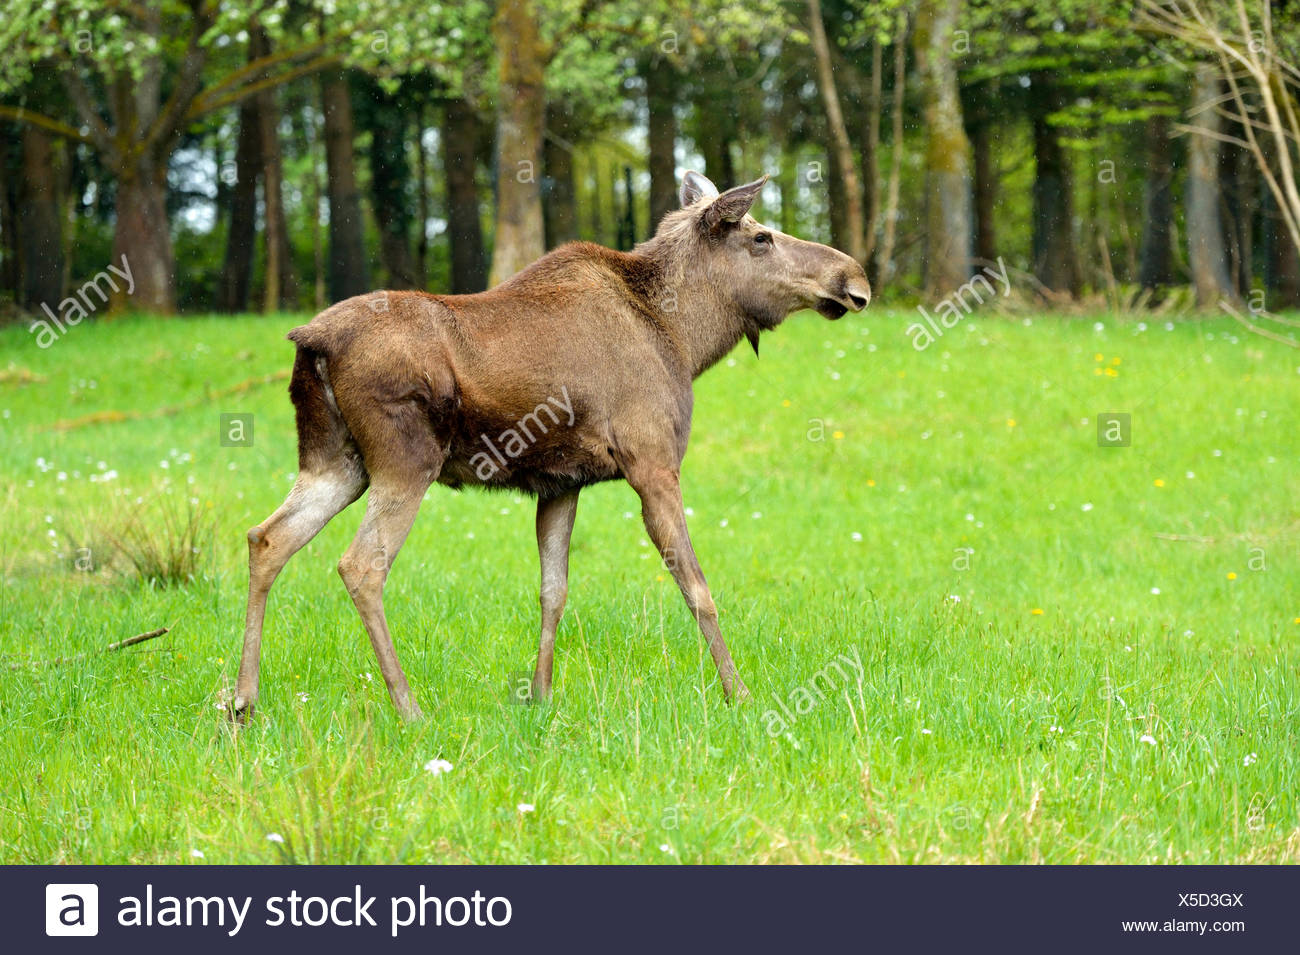 Moose or elk (Alces alces) in fresh grass, captive, Canton of Zurich, Switzerland - Stock Image